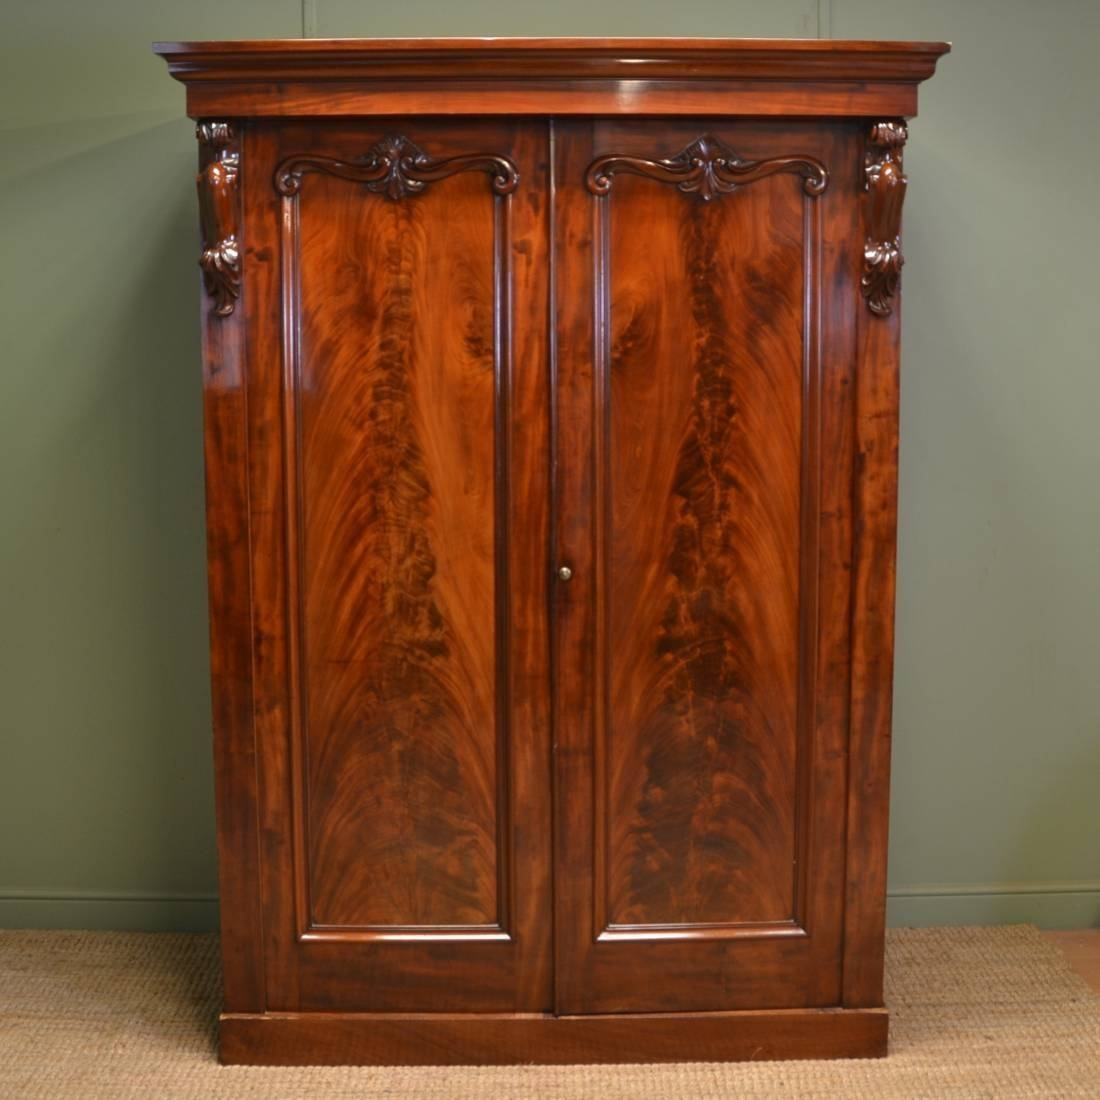 Victorian Wardrobe Images - Reverse Search inside Victorian Mahogany Breakfront Wardrobe (Image 28 of 30)